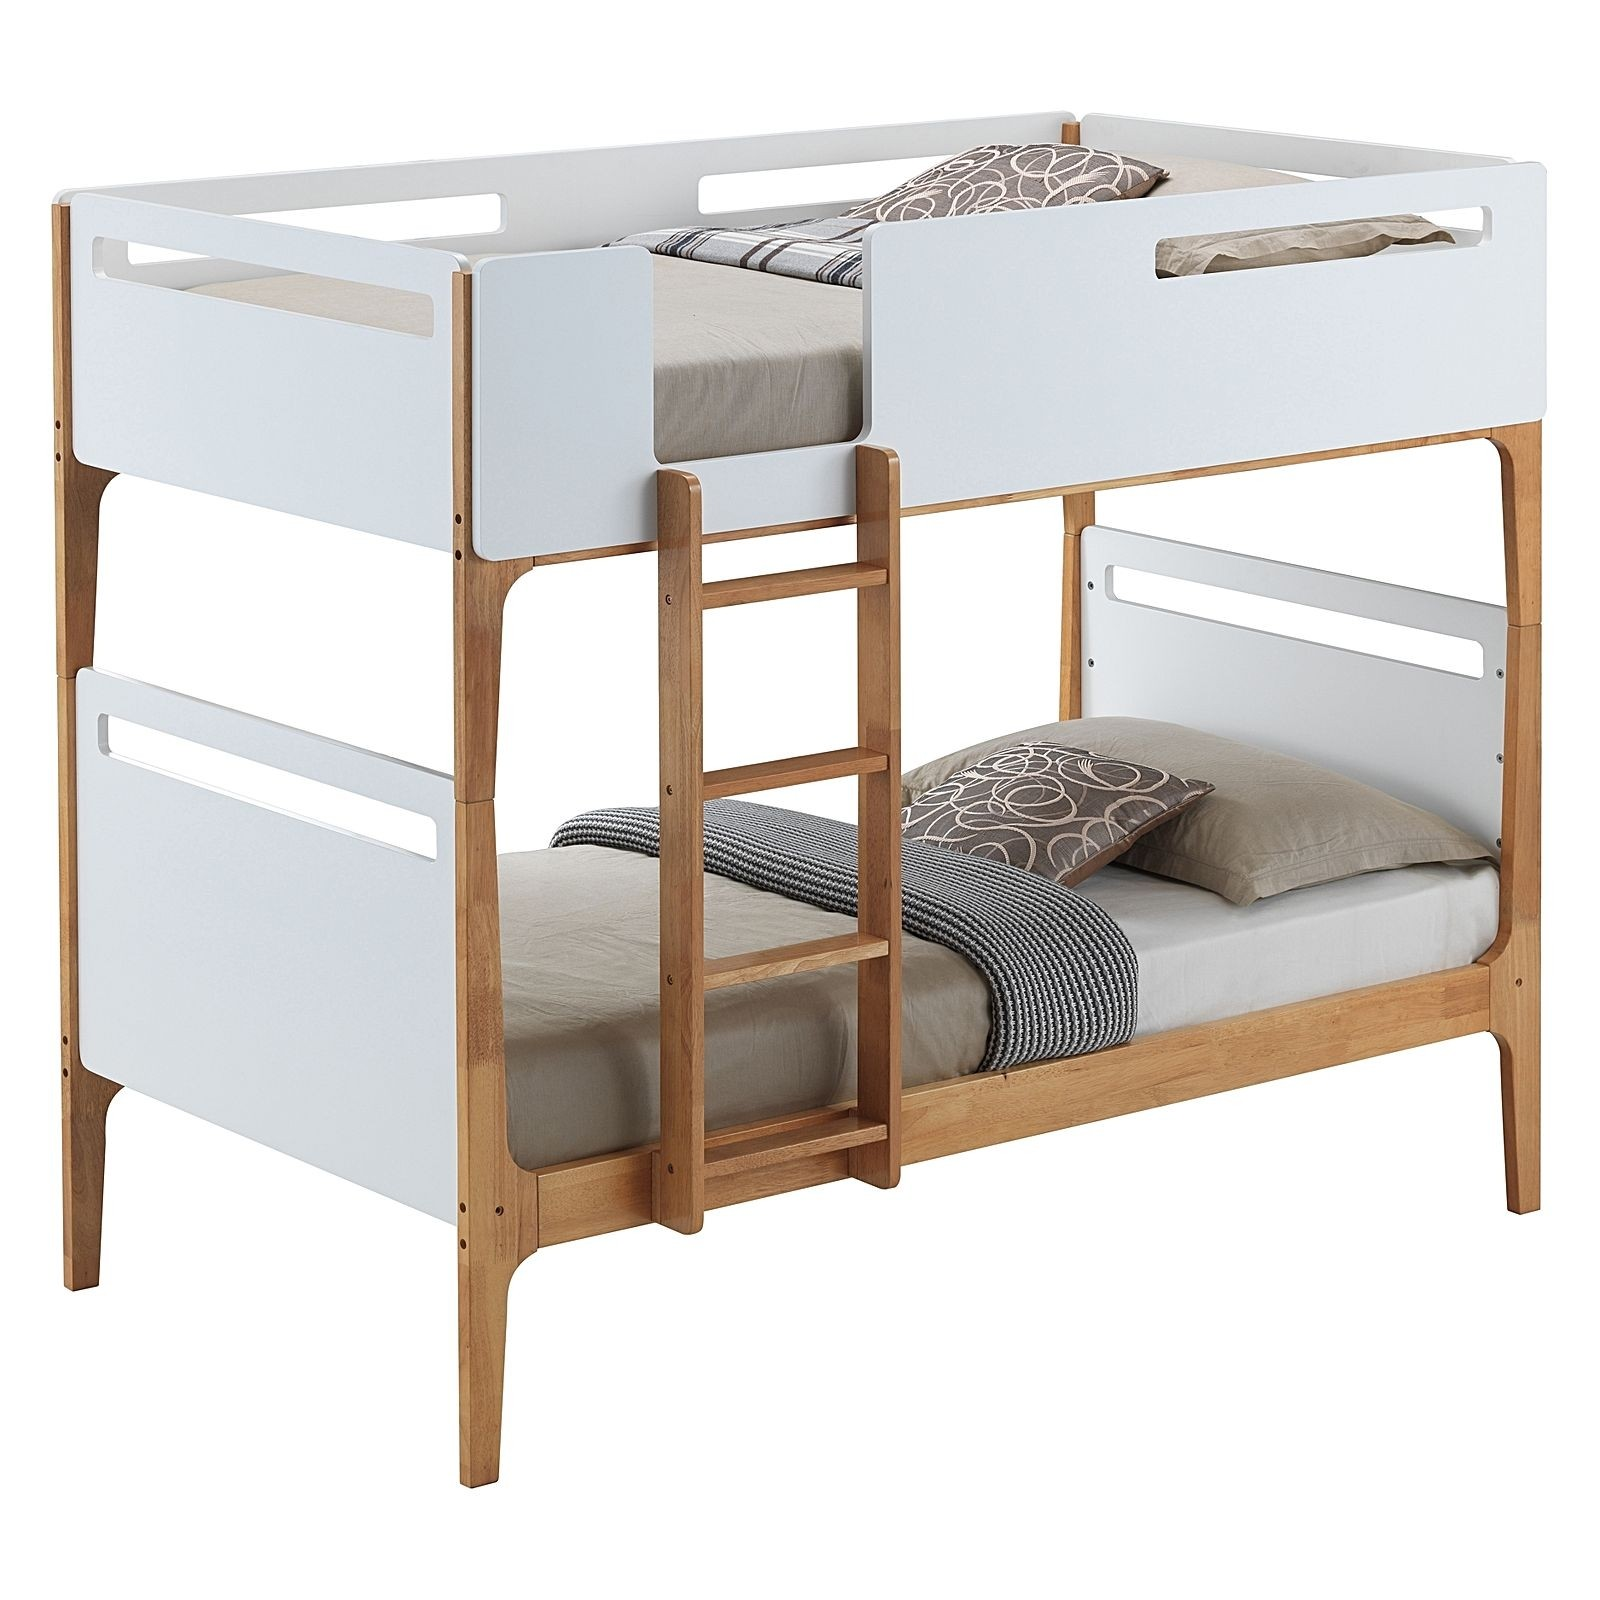 Hayes Wooden Bunk Bed, Single, White / Oak